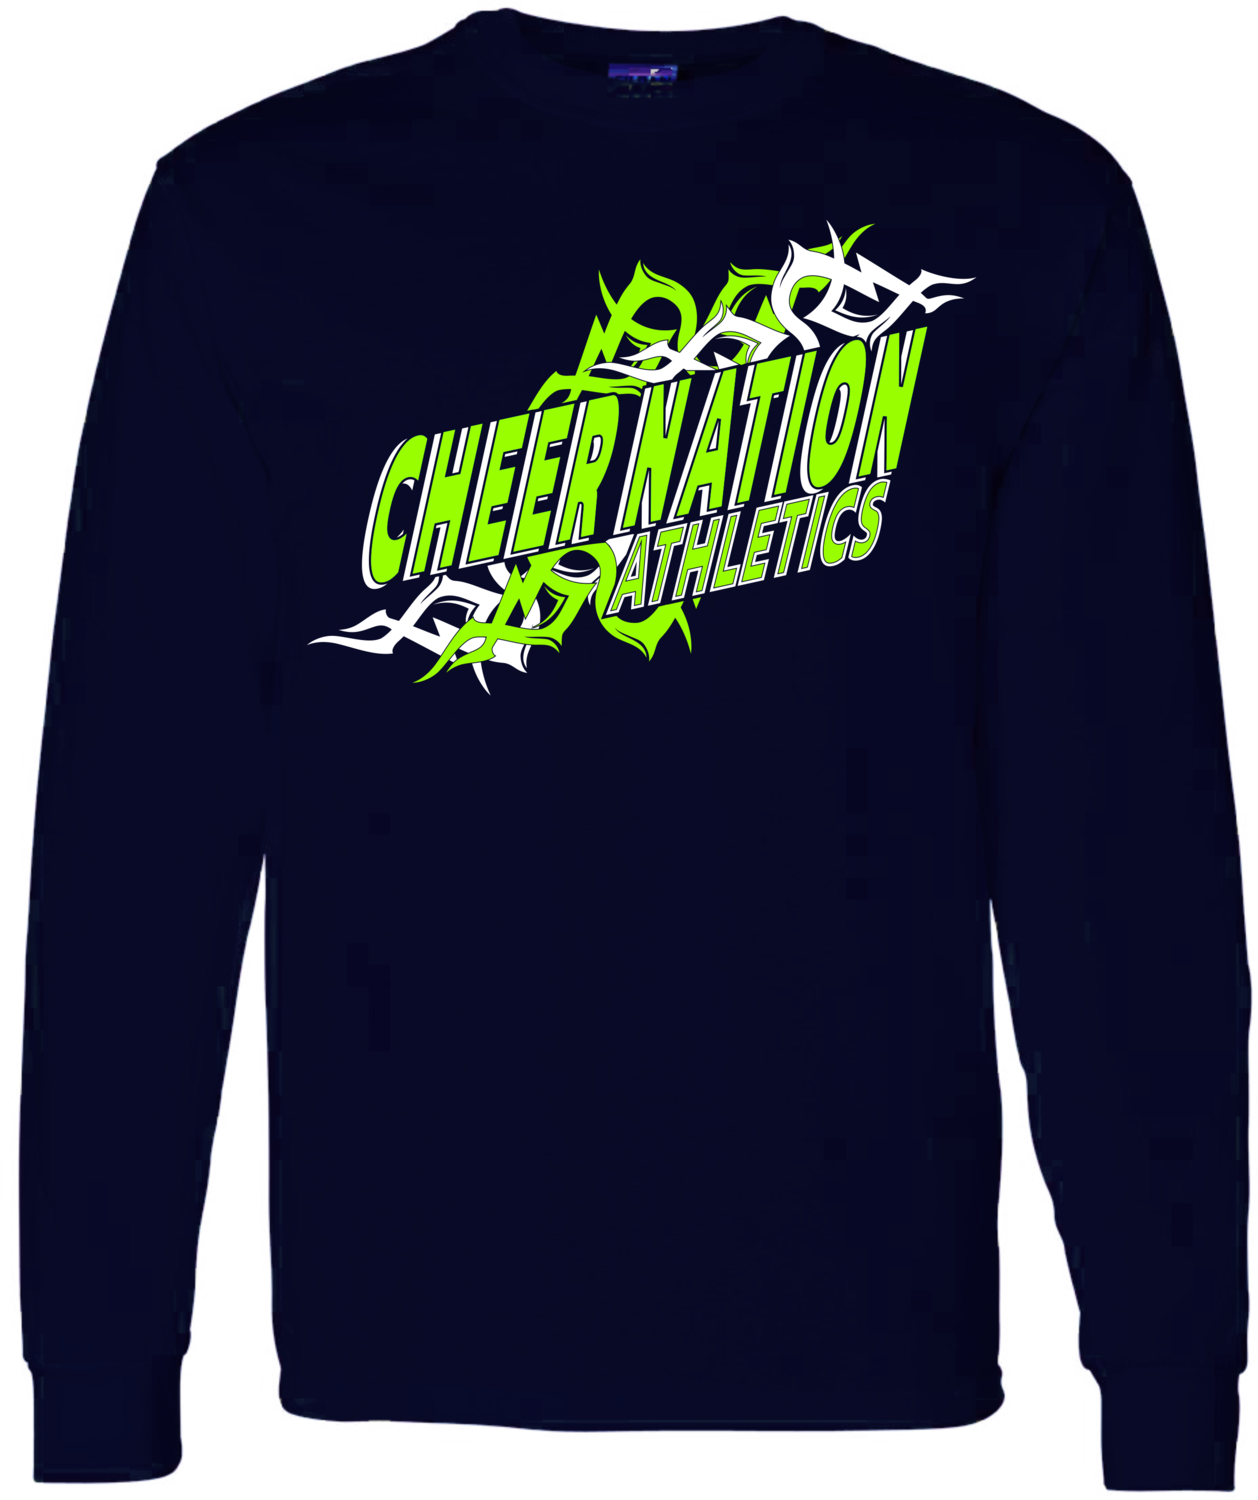 Cheer Nation Athletics - Barbed Wire